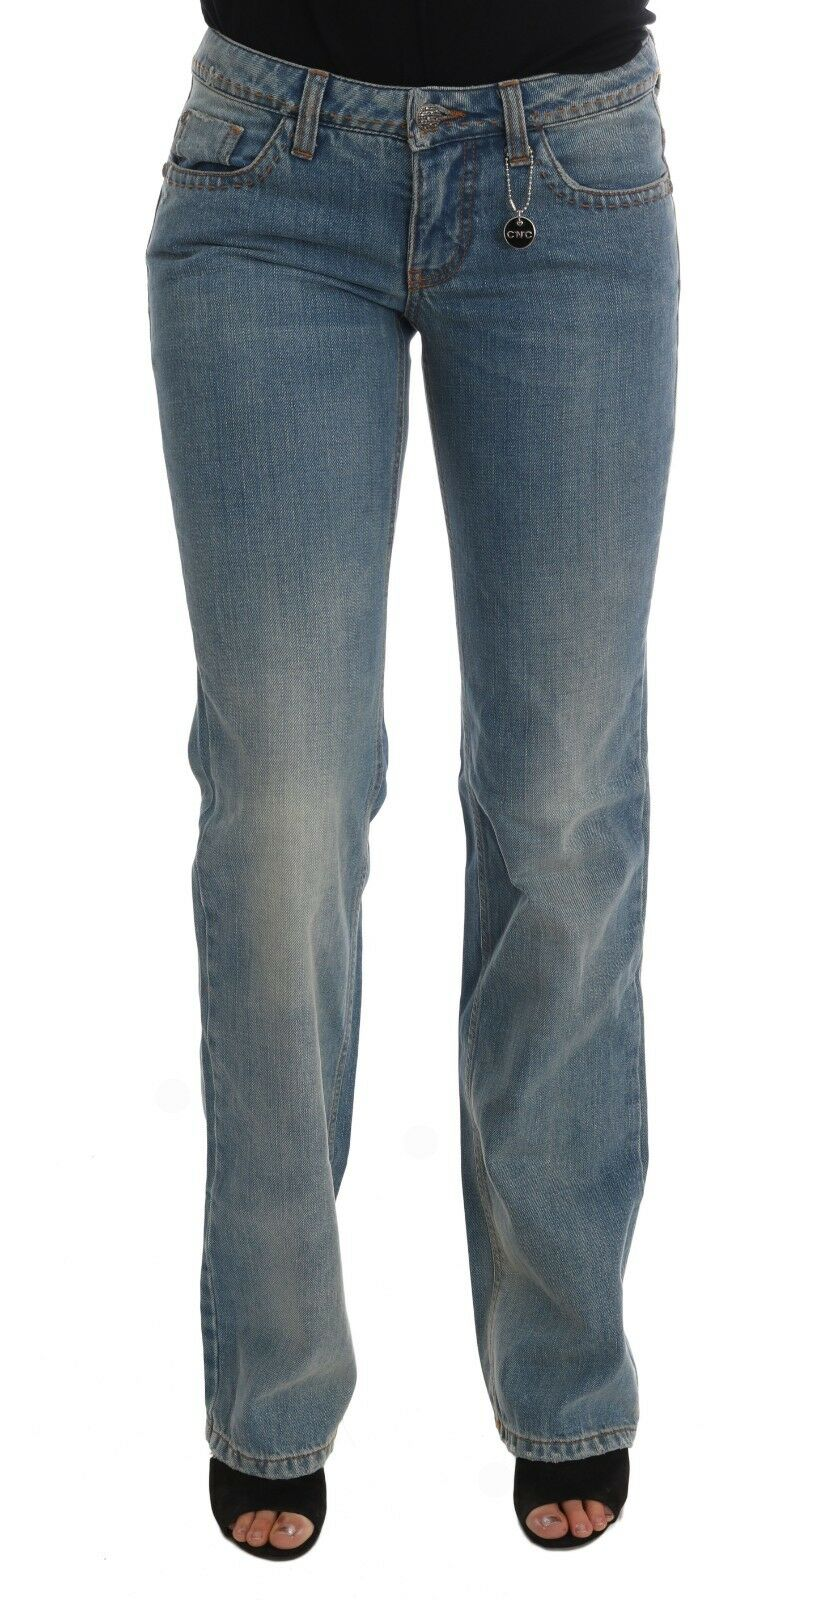 NEW  280 CoSTUME NATIONAL C'N'C Jeans Denim bluee Wash Cotton Classic Pant s. W26